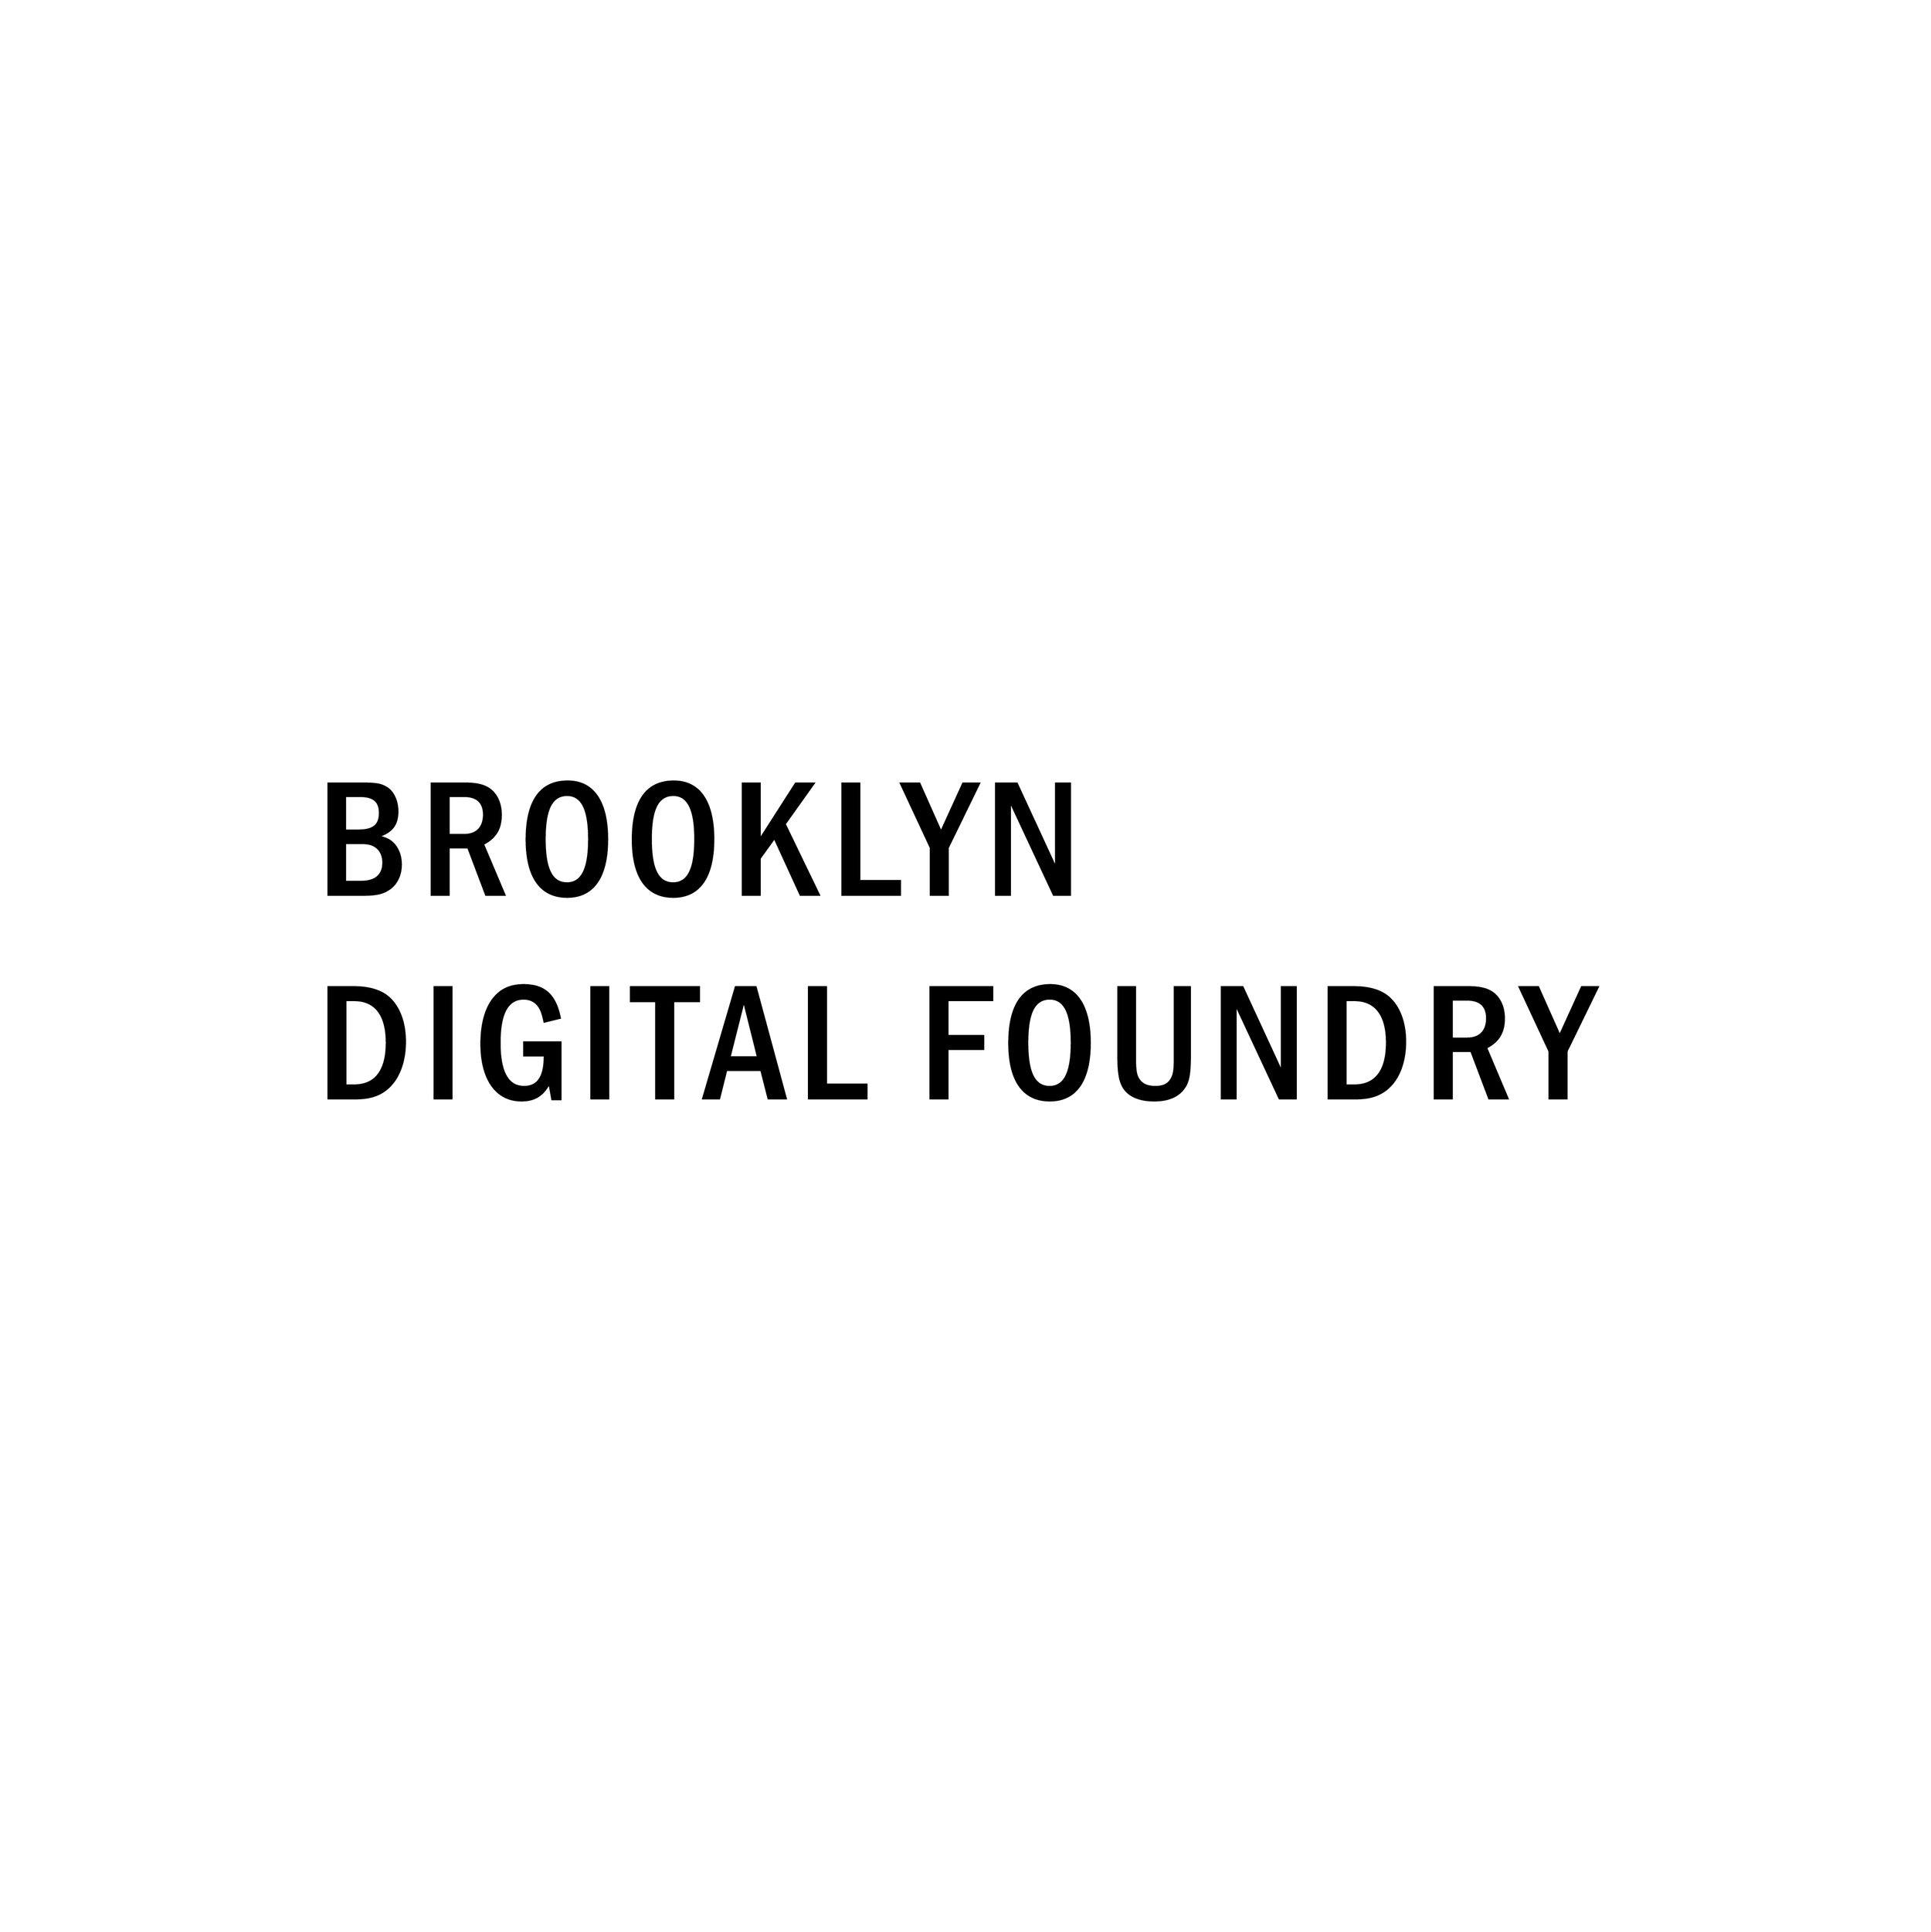 Brooklyn Digital Foundry is a brand, web, and content agency that gets results. Their work empowers clients to evolve their platforms and engage their audiences.   Website:  www.brooklynfoundry.com